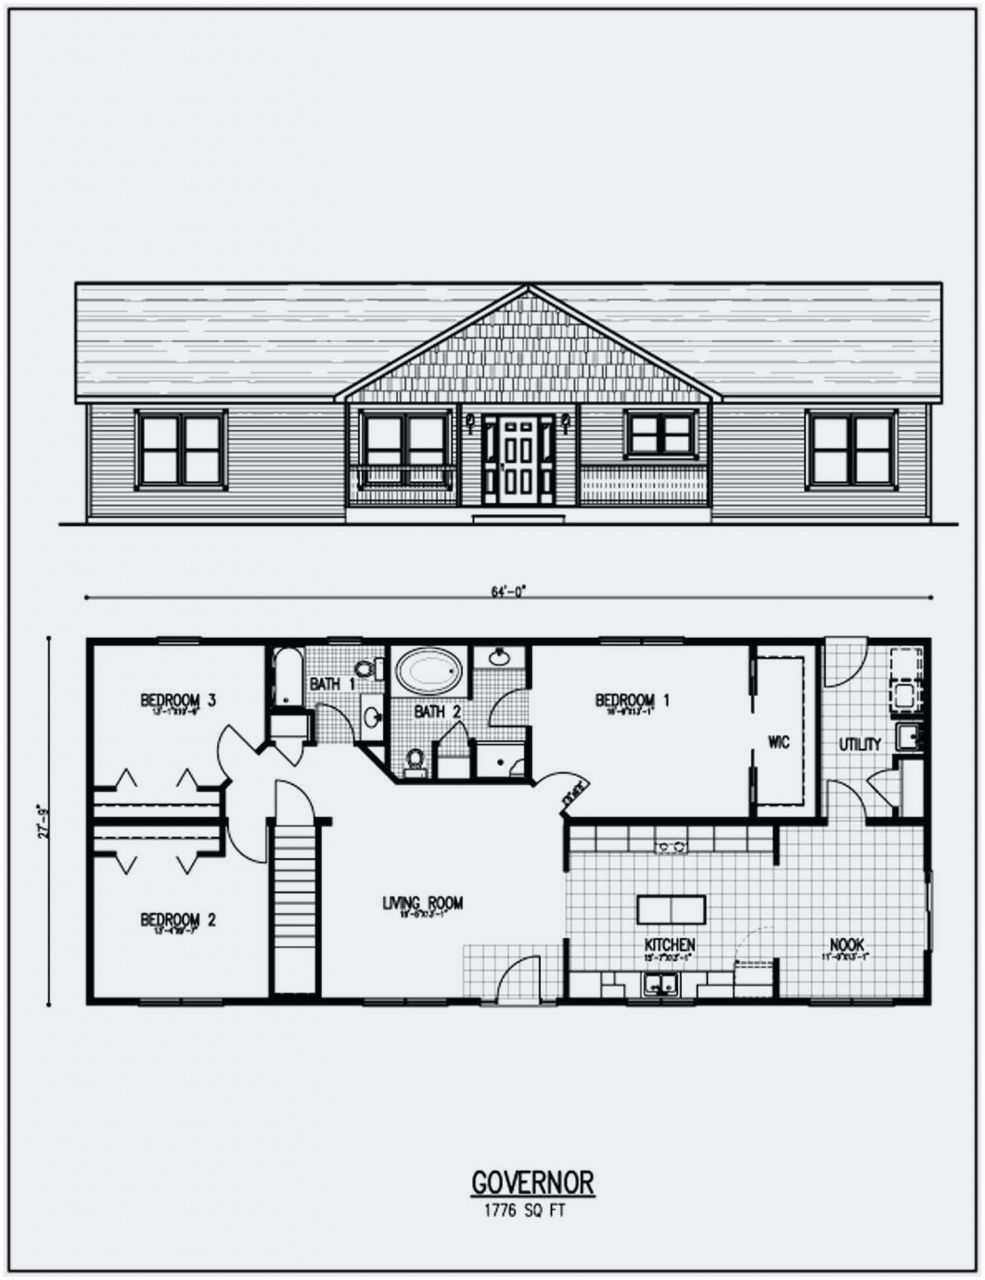 55 Small Ranch House Plans with Bat 2016 | Bat ... on raised garden plans, house on stilts plans, compact house plans, raised shed plans, tiny house plans, raised ranch, raised beach house, raised house floor plans, raised home, coastal stilt house plans, modern ranch house plans, desert style house plans, coastal raised house plans, raised cabin plans, raised southern house plans, raised wallpaper, raised deck plans, guest house plans, southern beach house plans, small building plans,